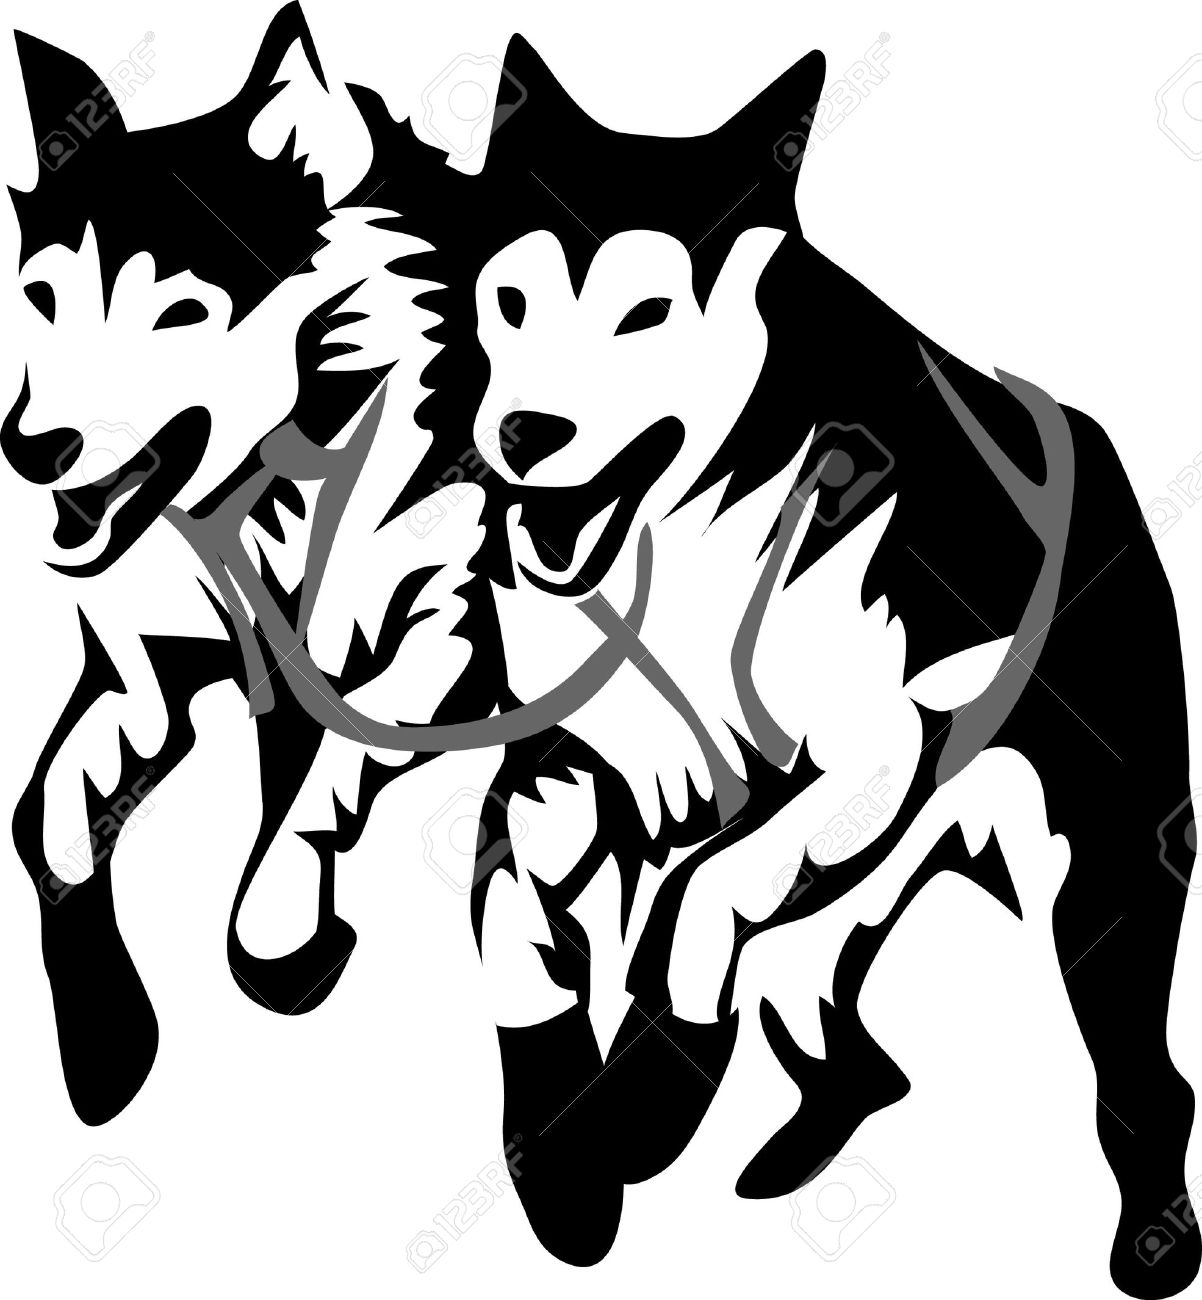 sled dogs running royalty free cliparts vectors and stock rh 123rf com dog sledding clipart dog pulling sled clipart